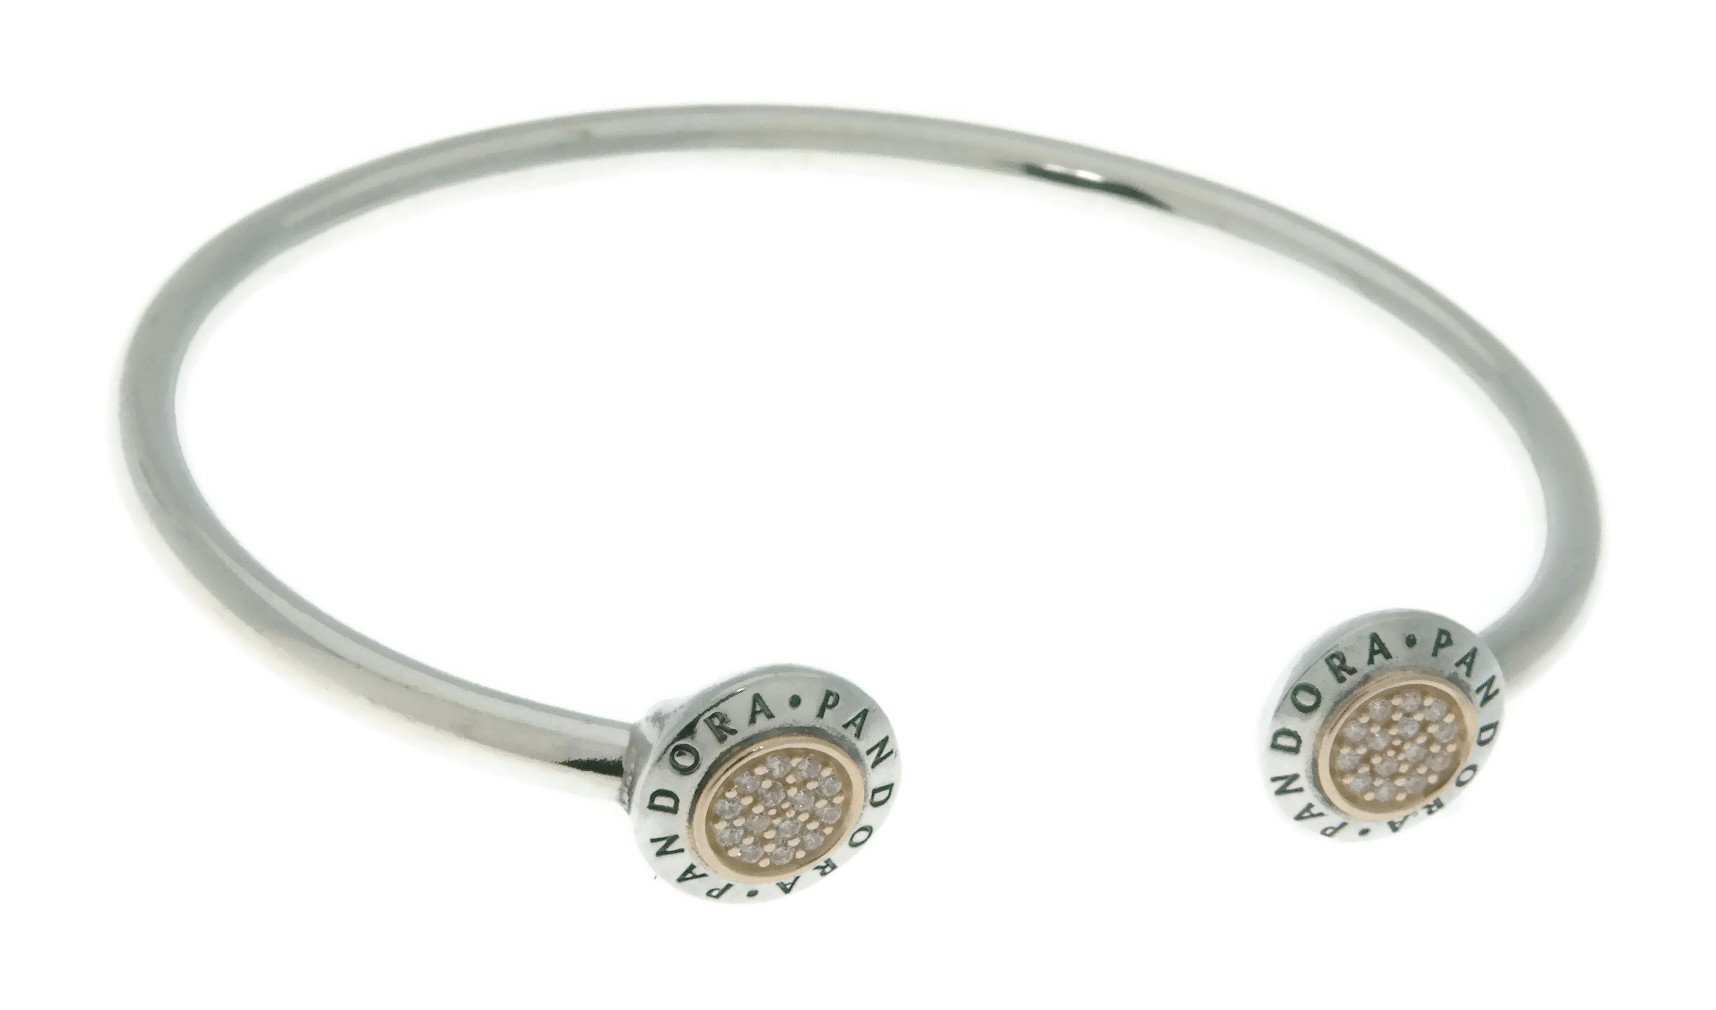 PANDORA Logo Open Bangle in Sterling Silver with 14k Gold and Clear Cubic Zirconia - Size: 16cm/6.3 Inches - 596274CZ